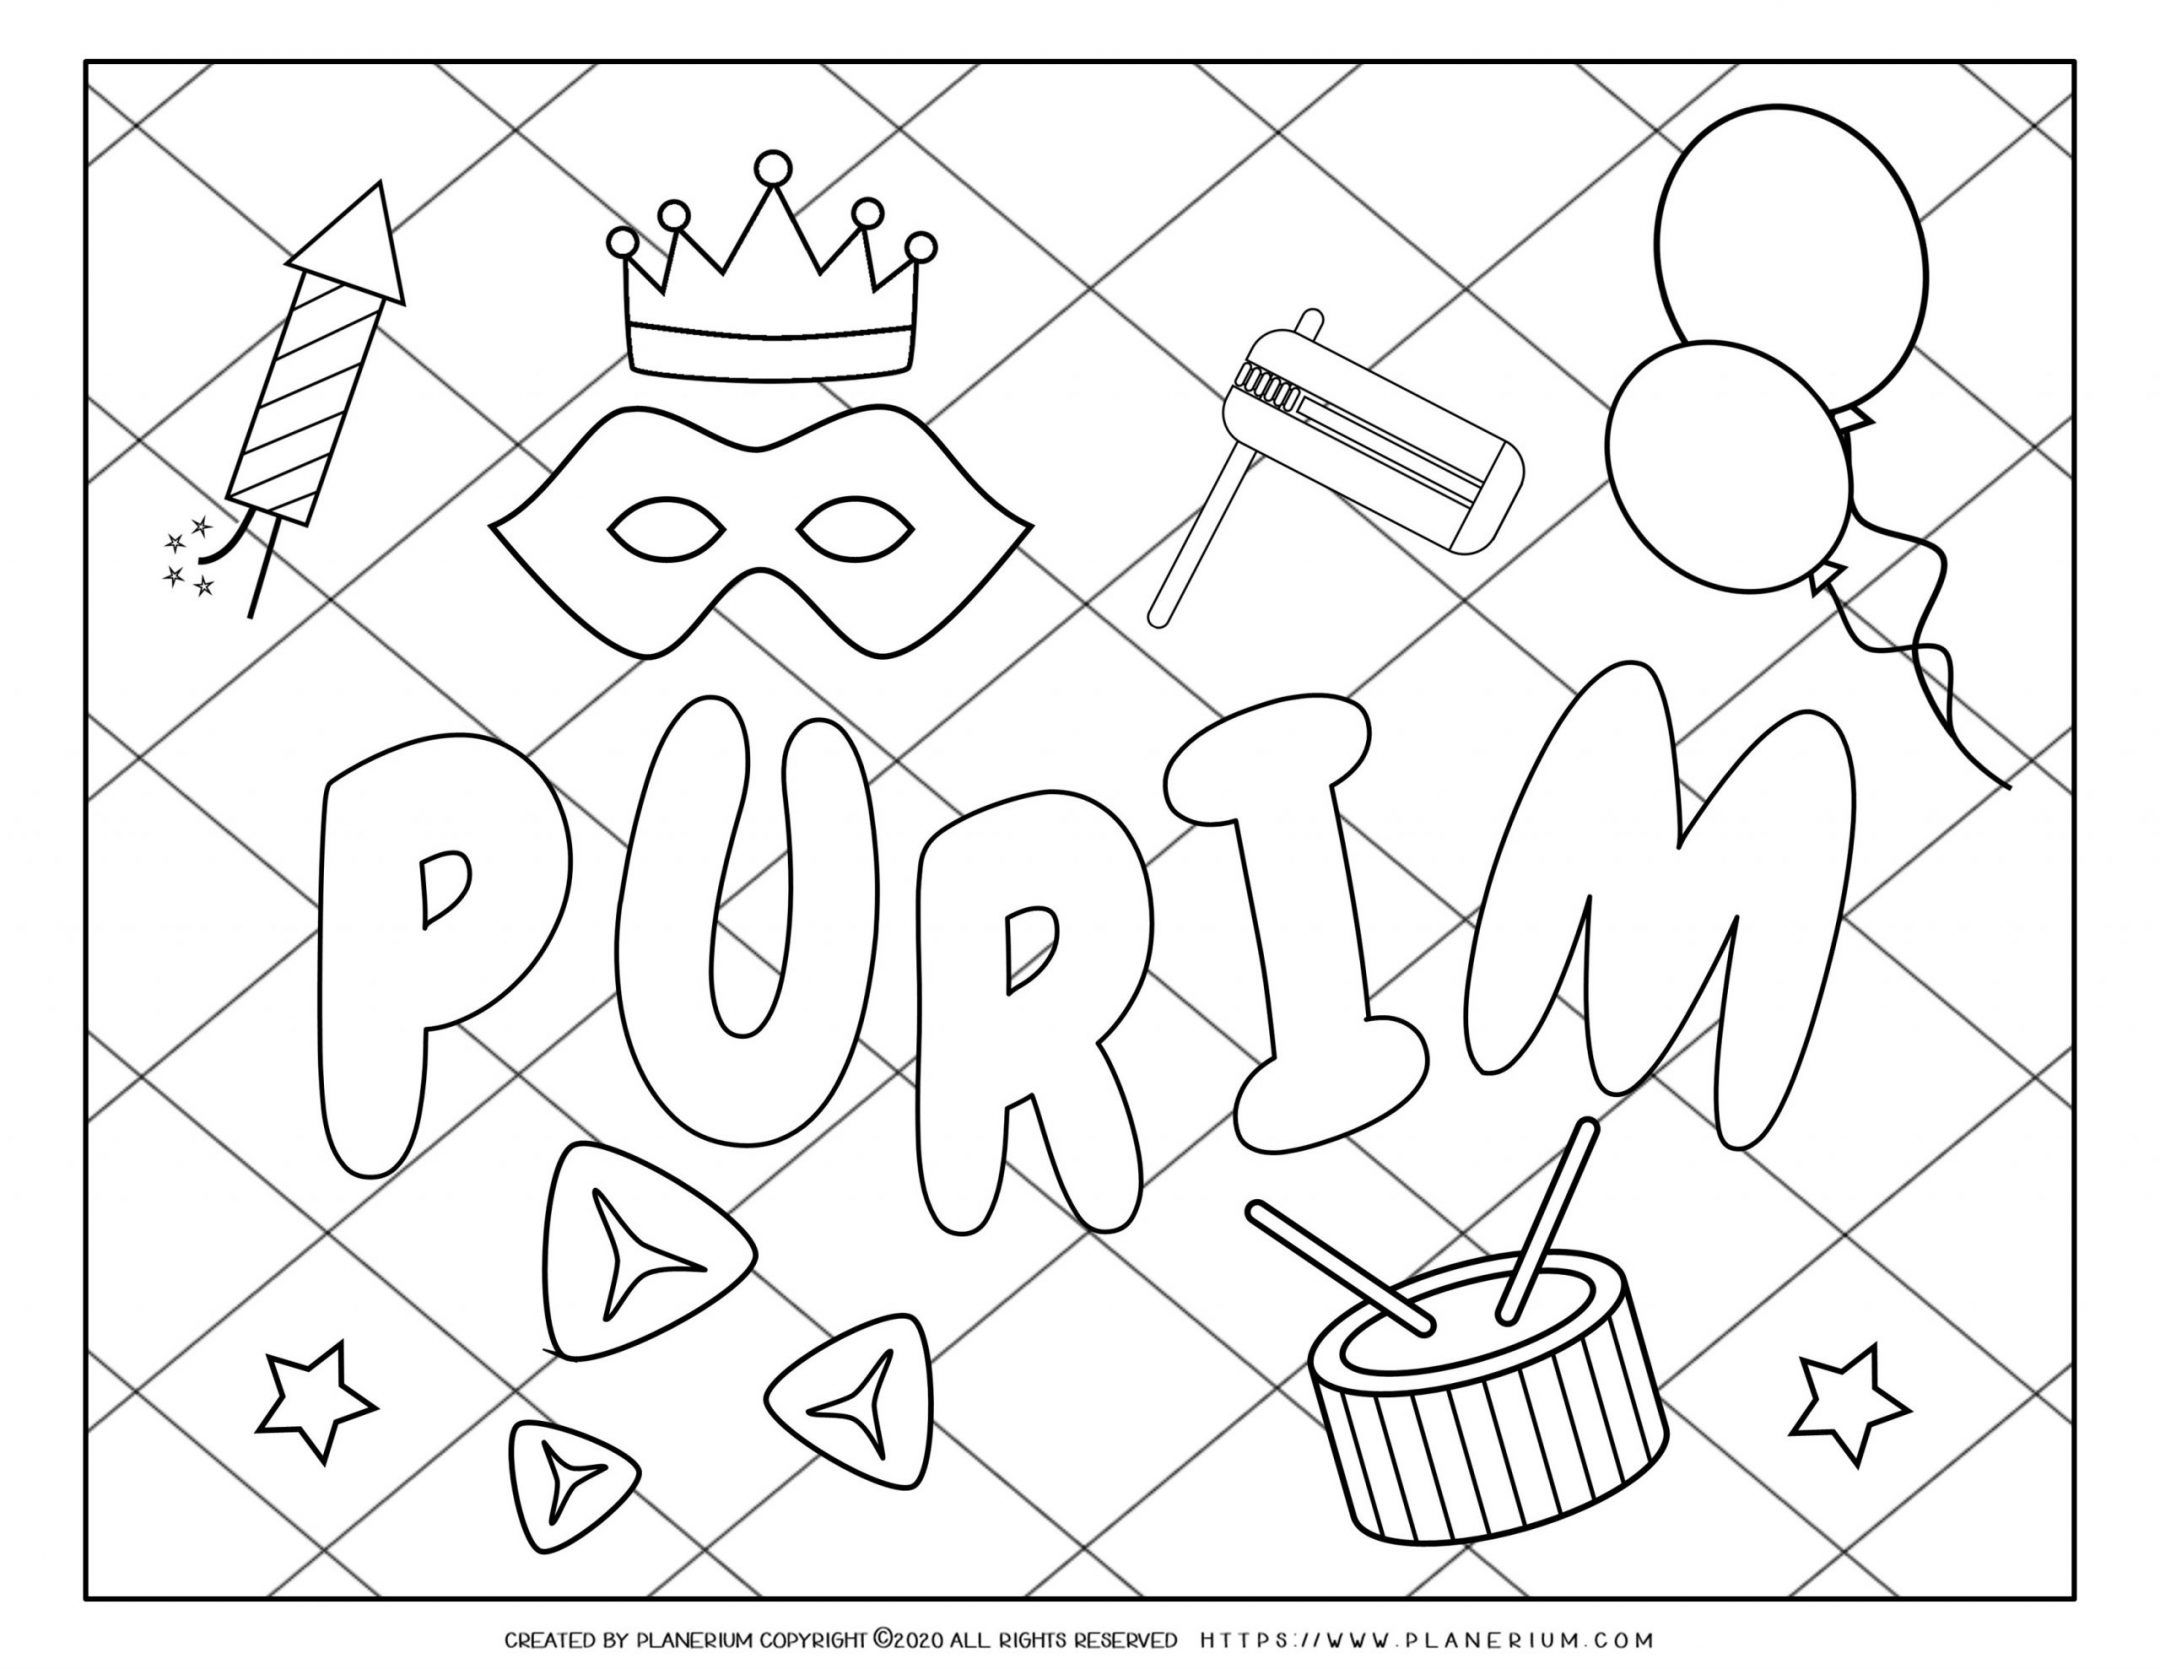 Purim 2020 - Coloring - Holiday Symbols Grid background